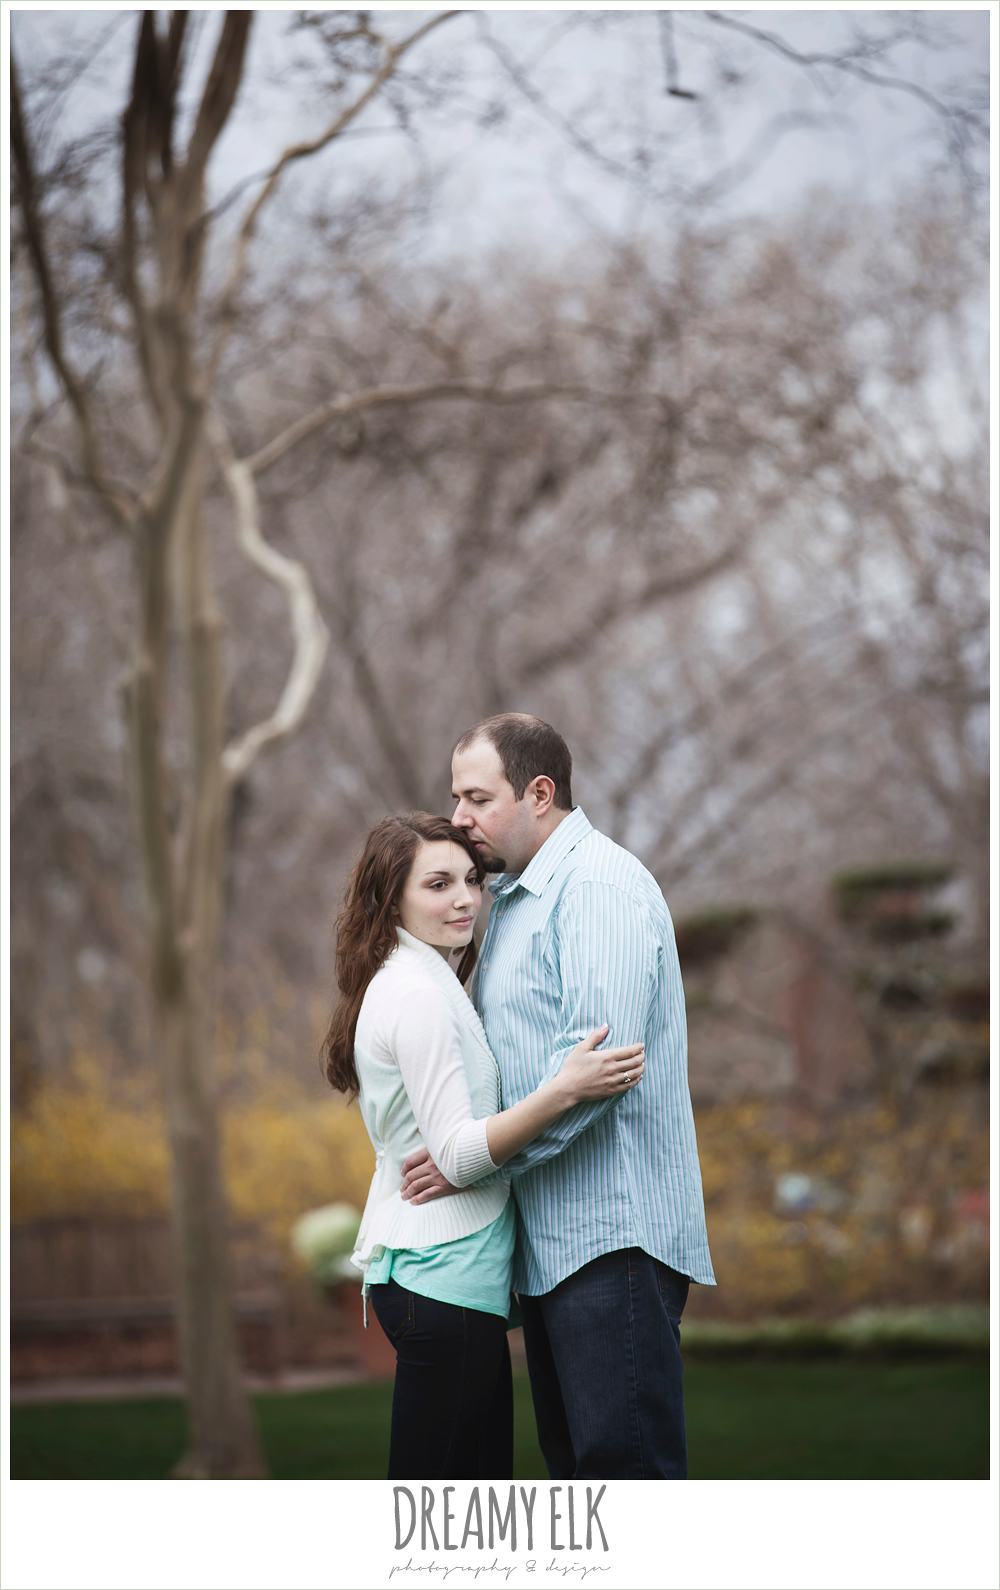 overcast engagement photo, dallas arboretum and botanical garden {dreamy elk photography and design}